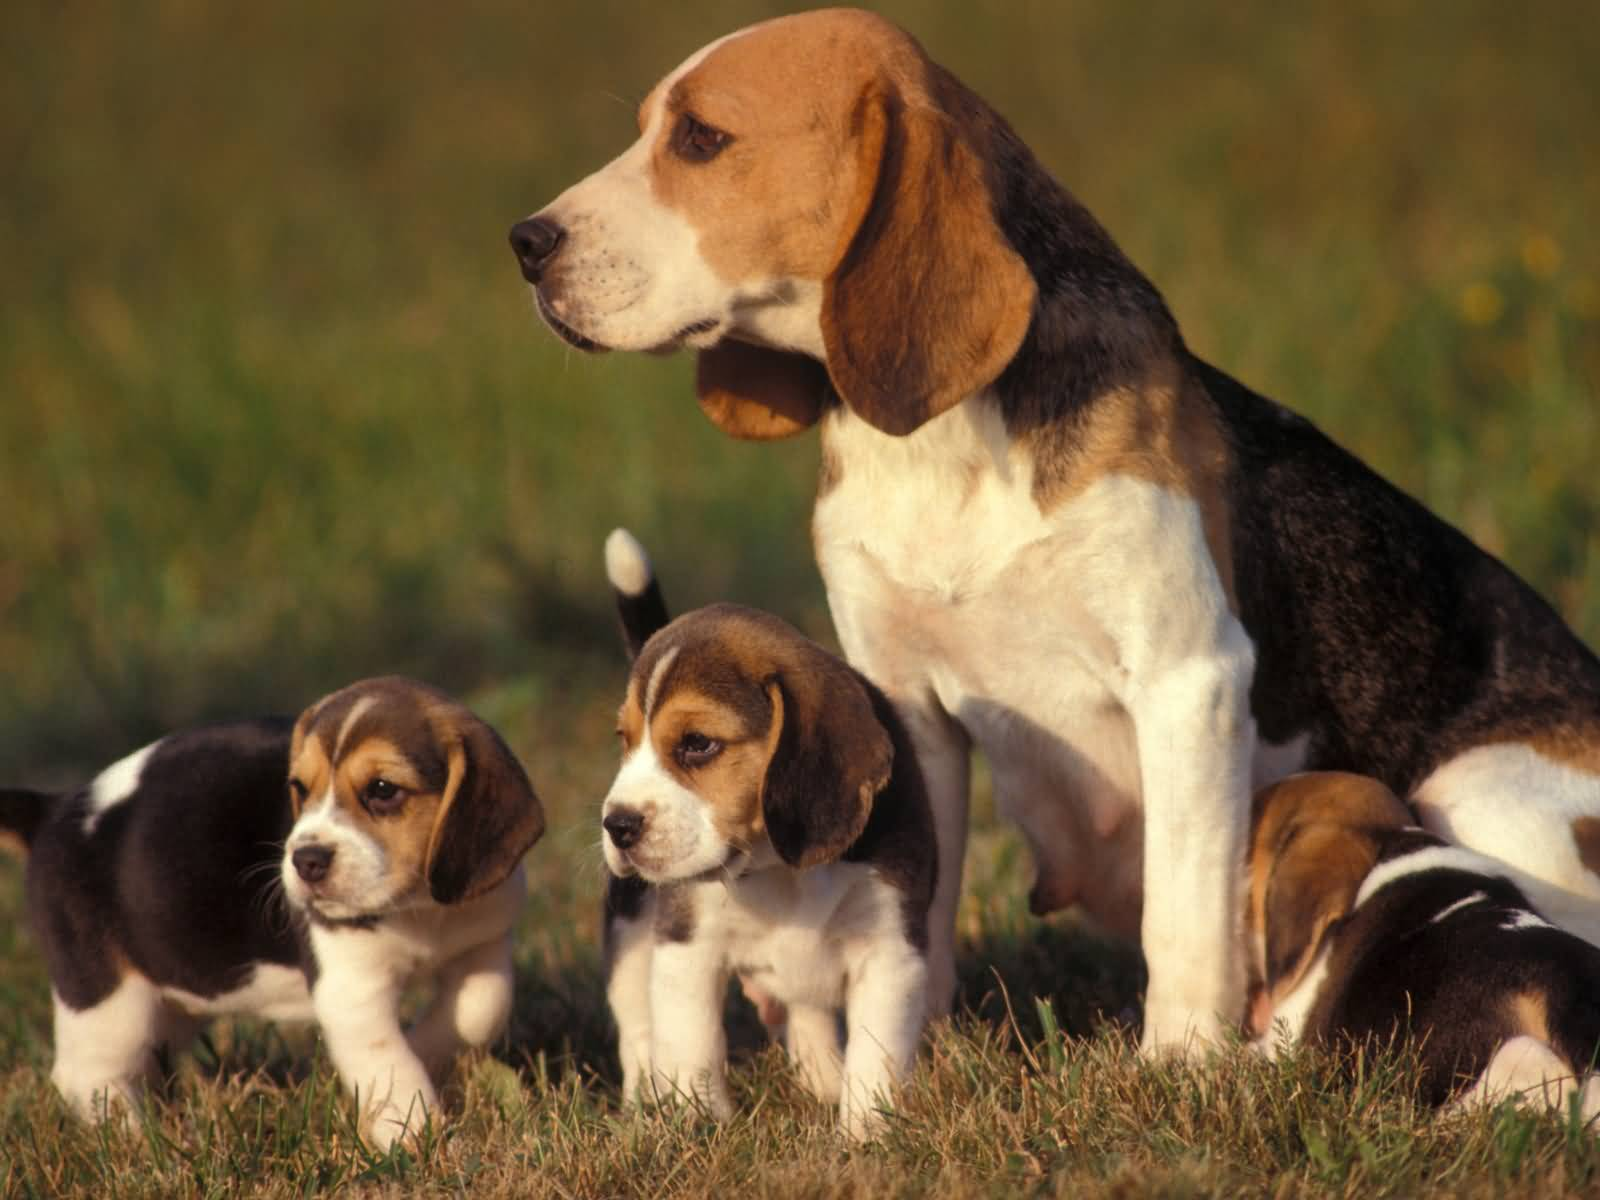 Full Family Image Of Beagle Dogs